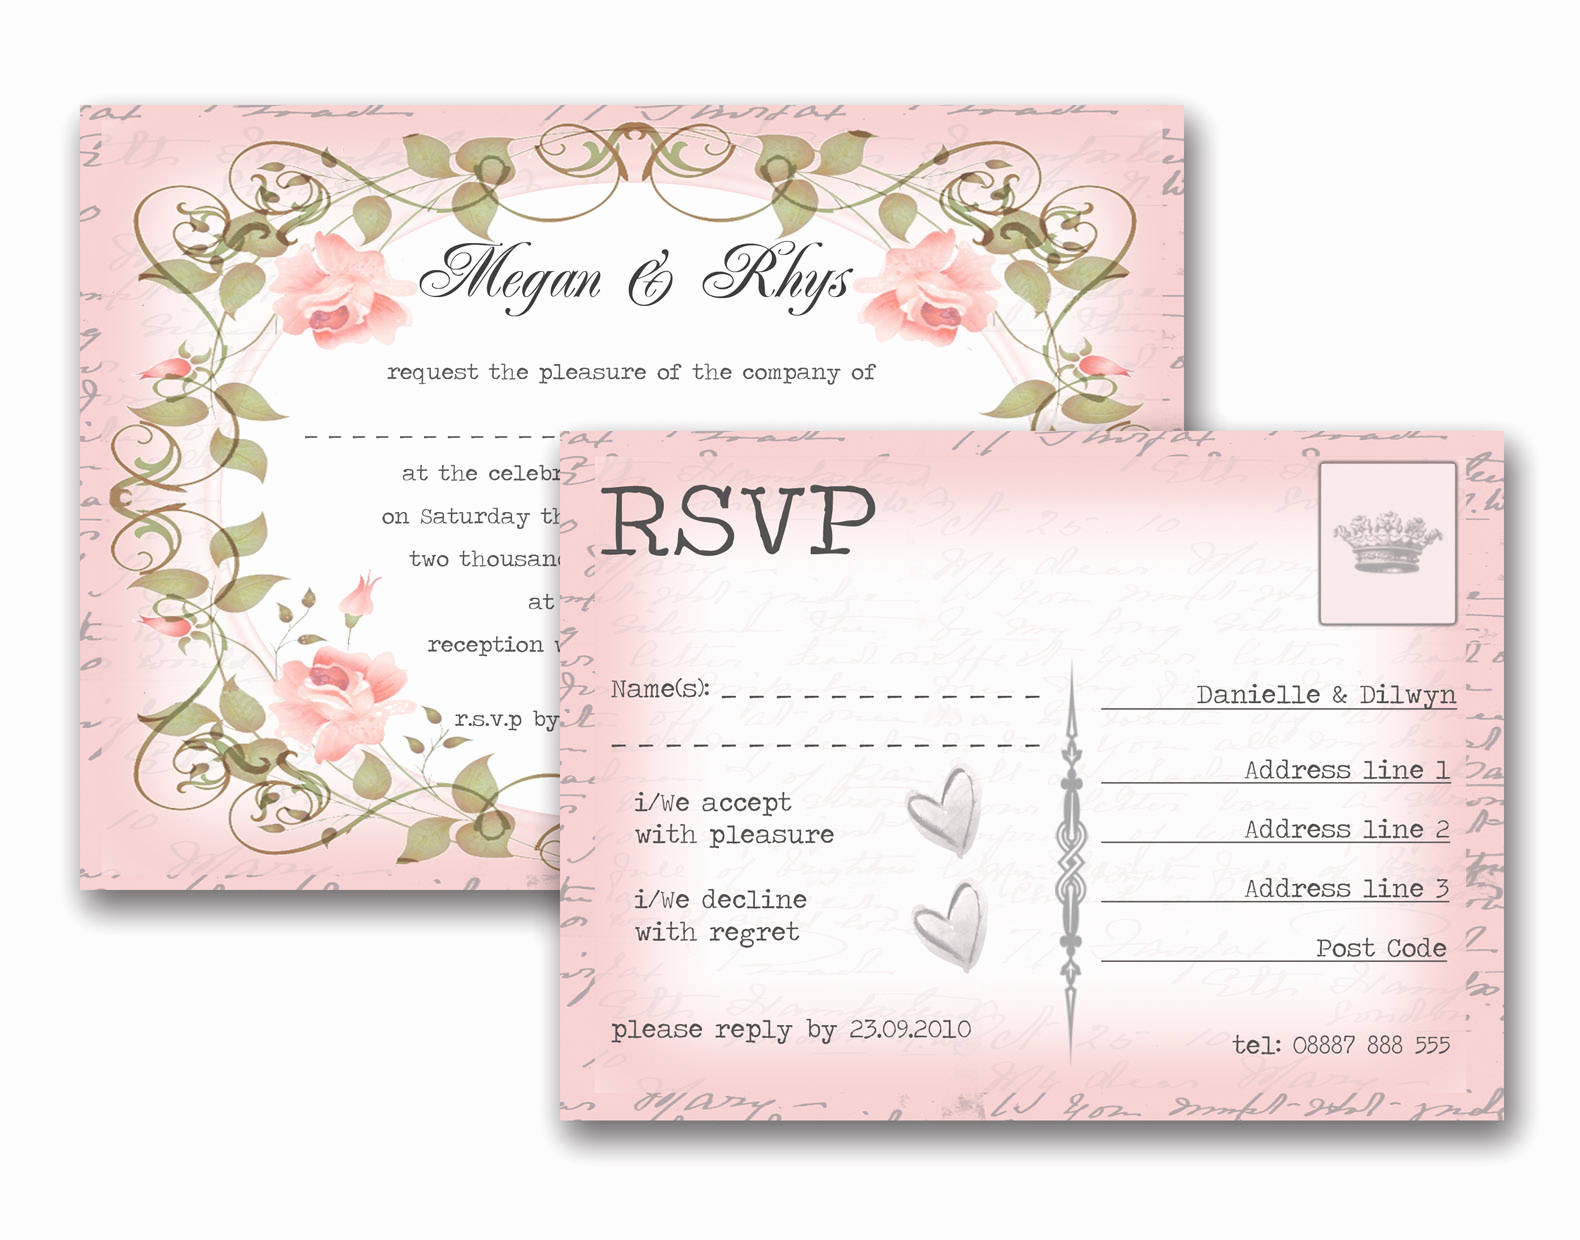 Rsvp Wedding Invitation Wording Lovely Invitations Endearing Rsvp Wedding Cards Inspirations